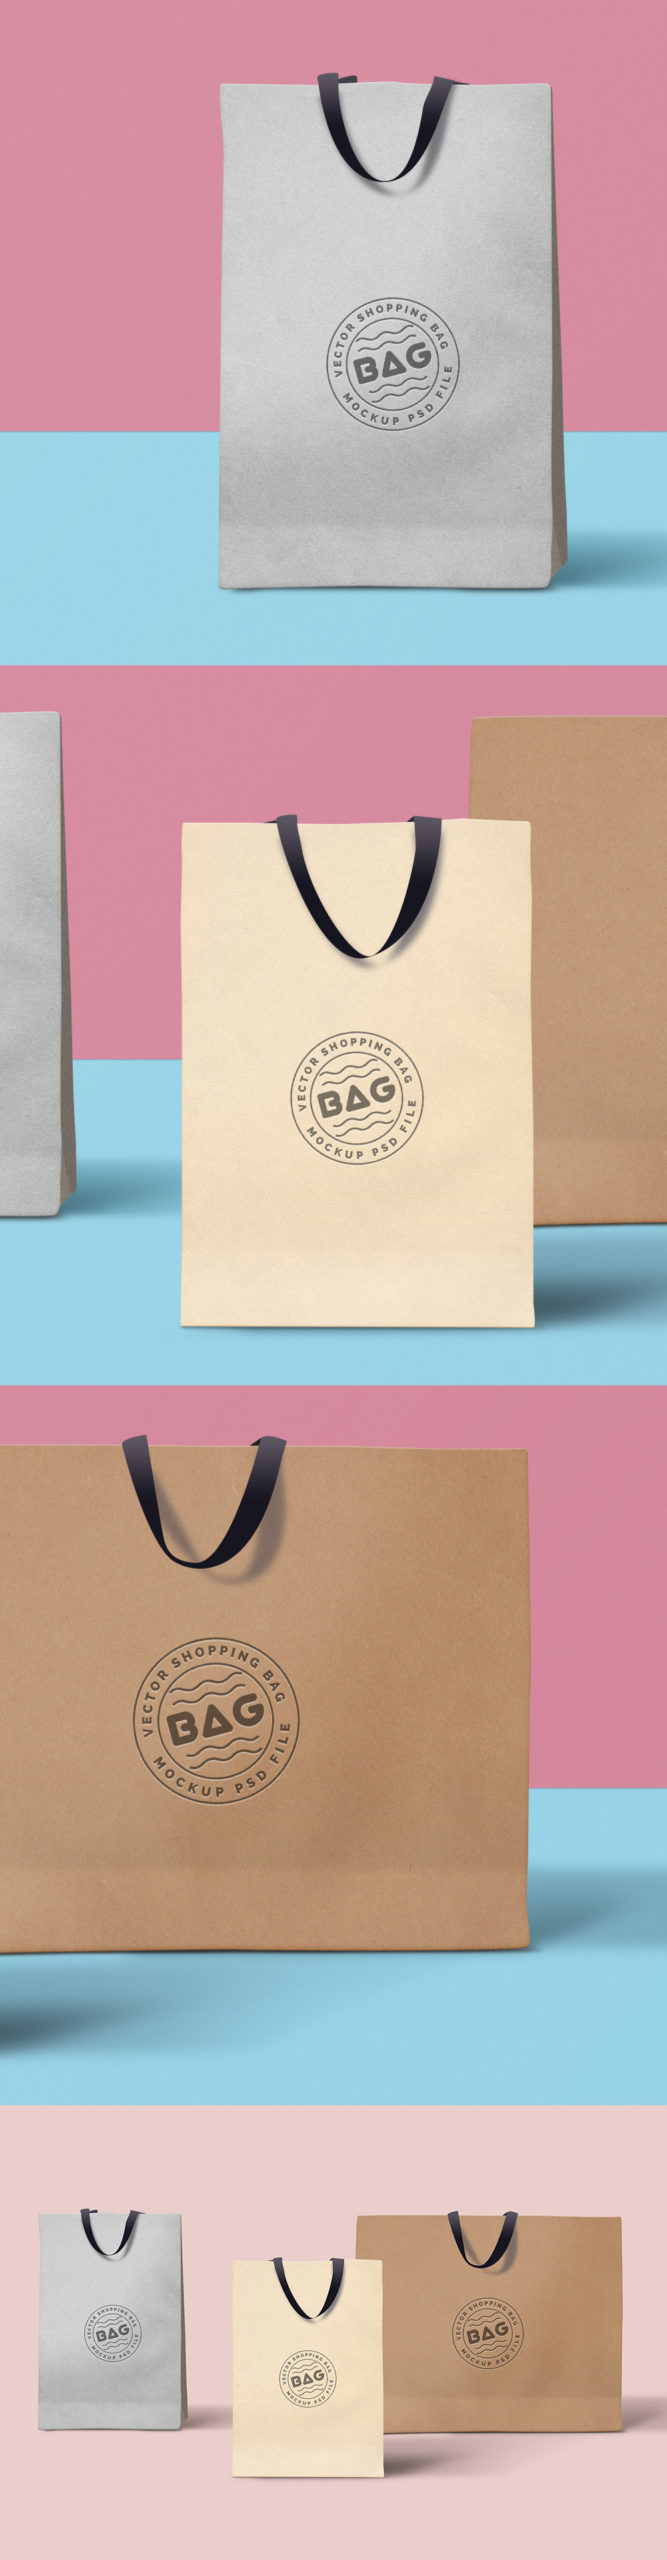 Clean Finished Shopping Bags PSD MockupTemplate